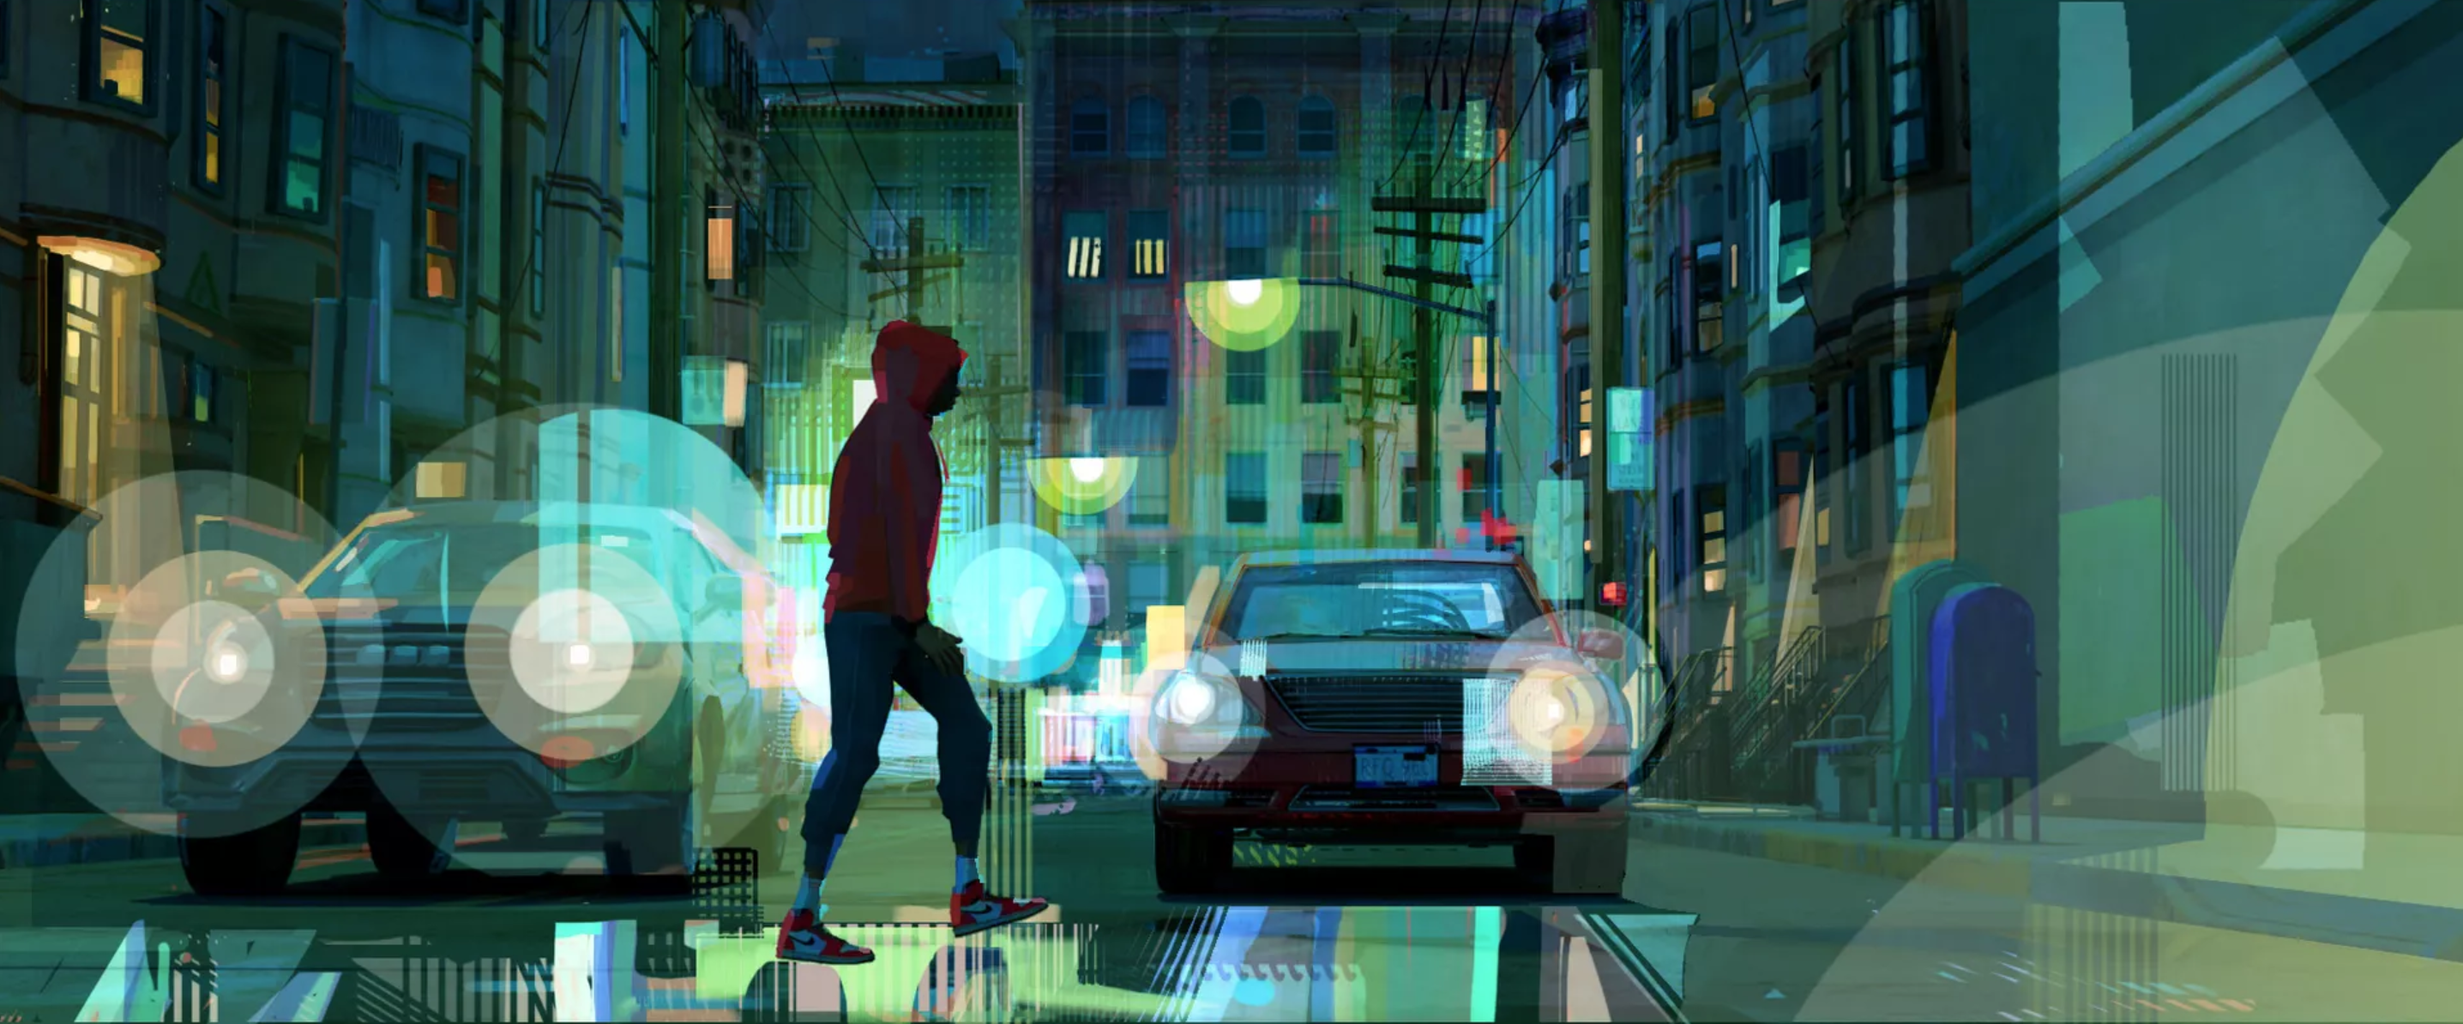 A still from Into the Spiderverse - Image courtesy of Dave Bleich - hero image 1